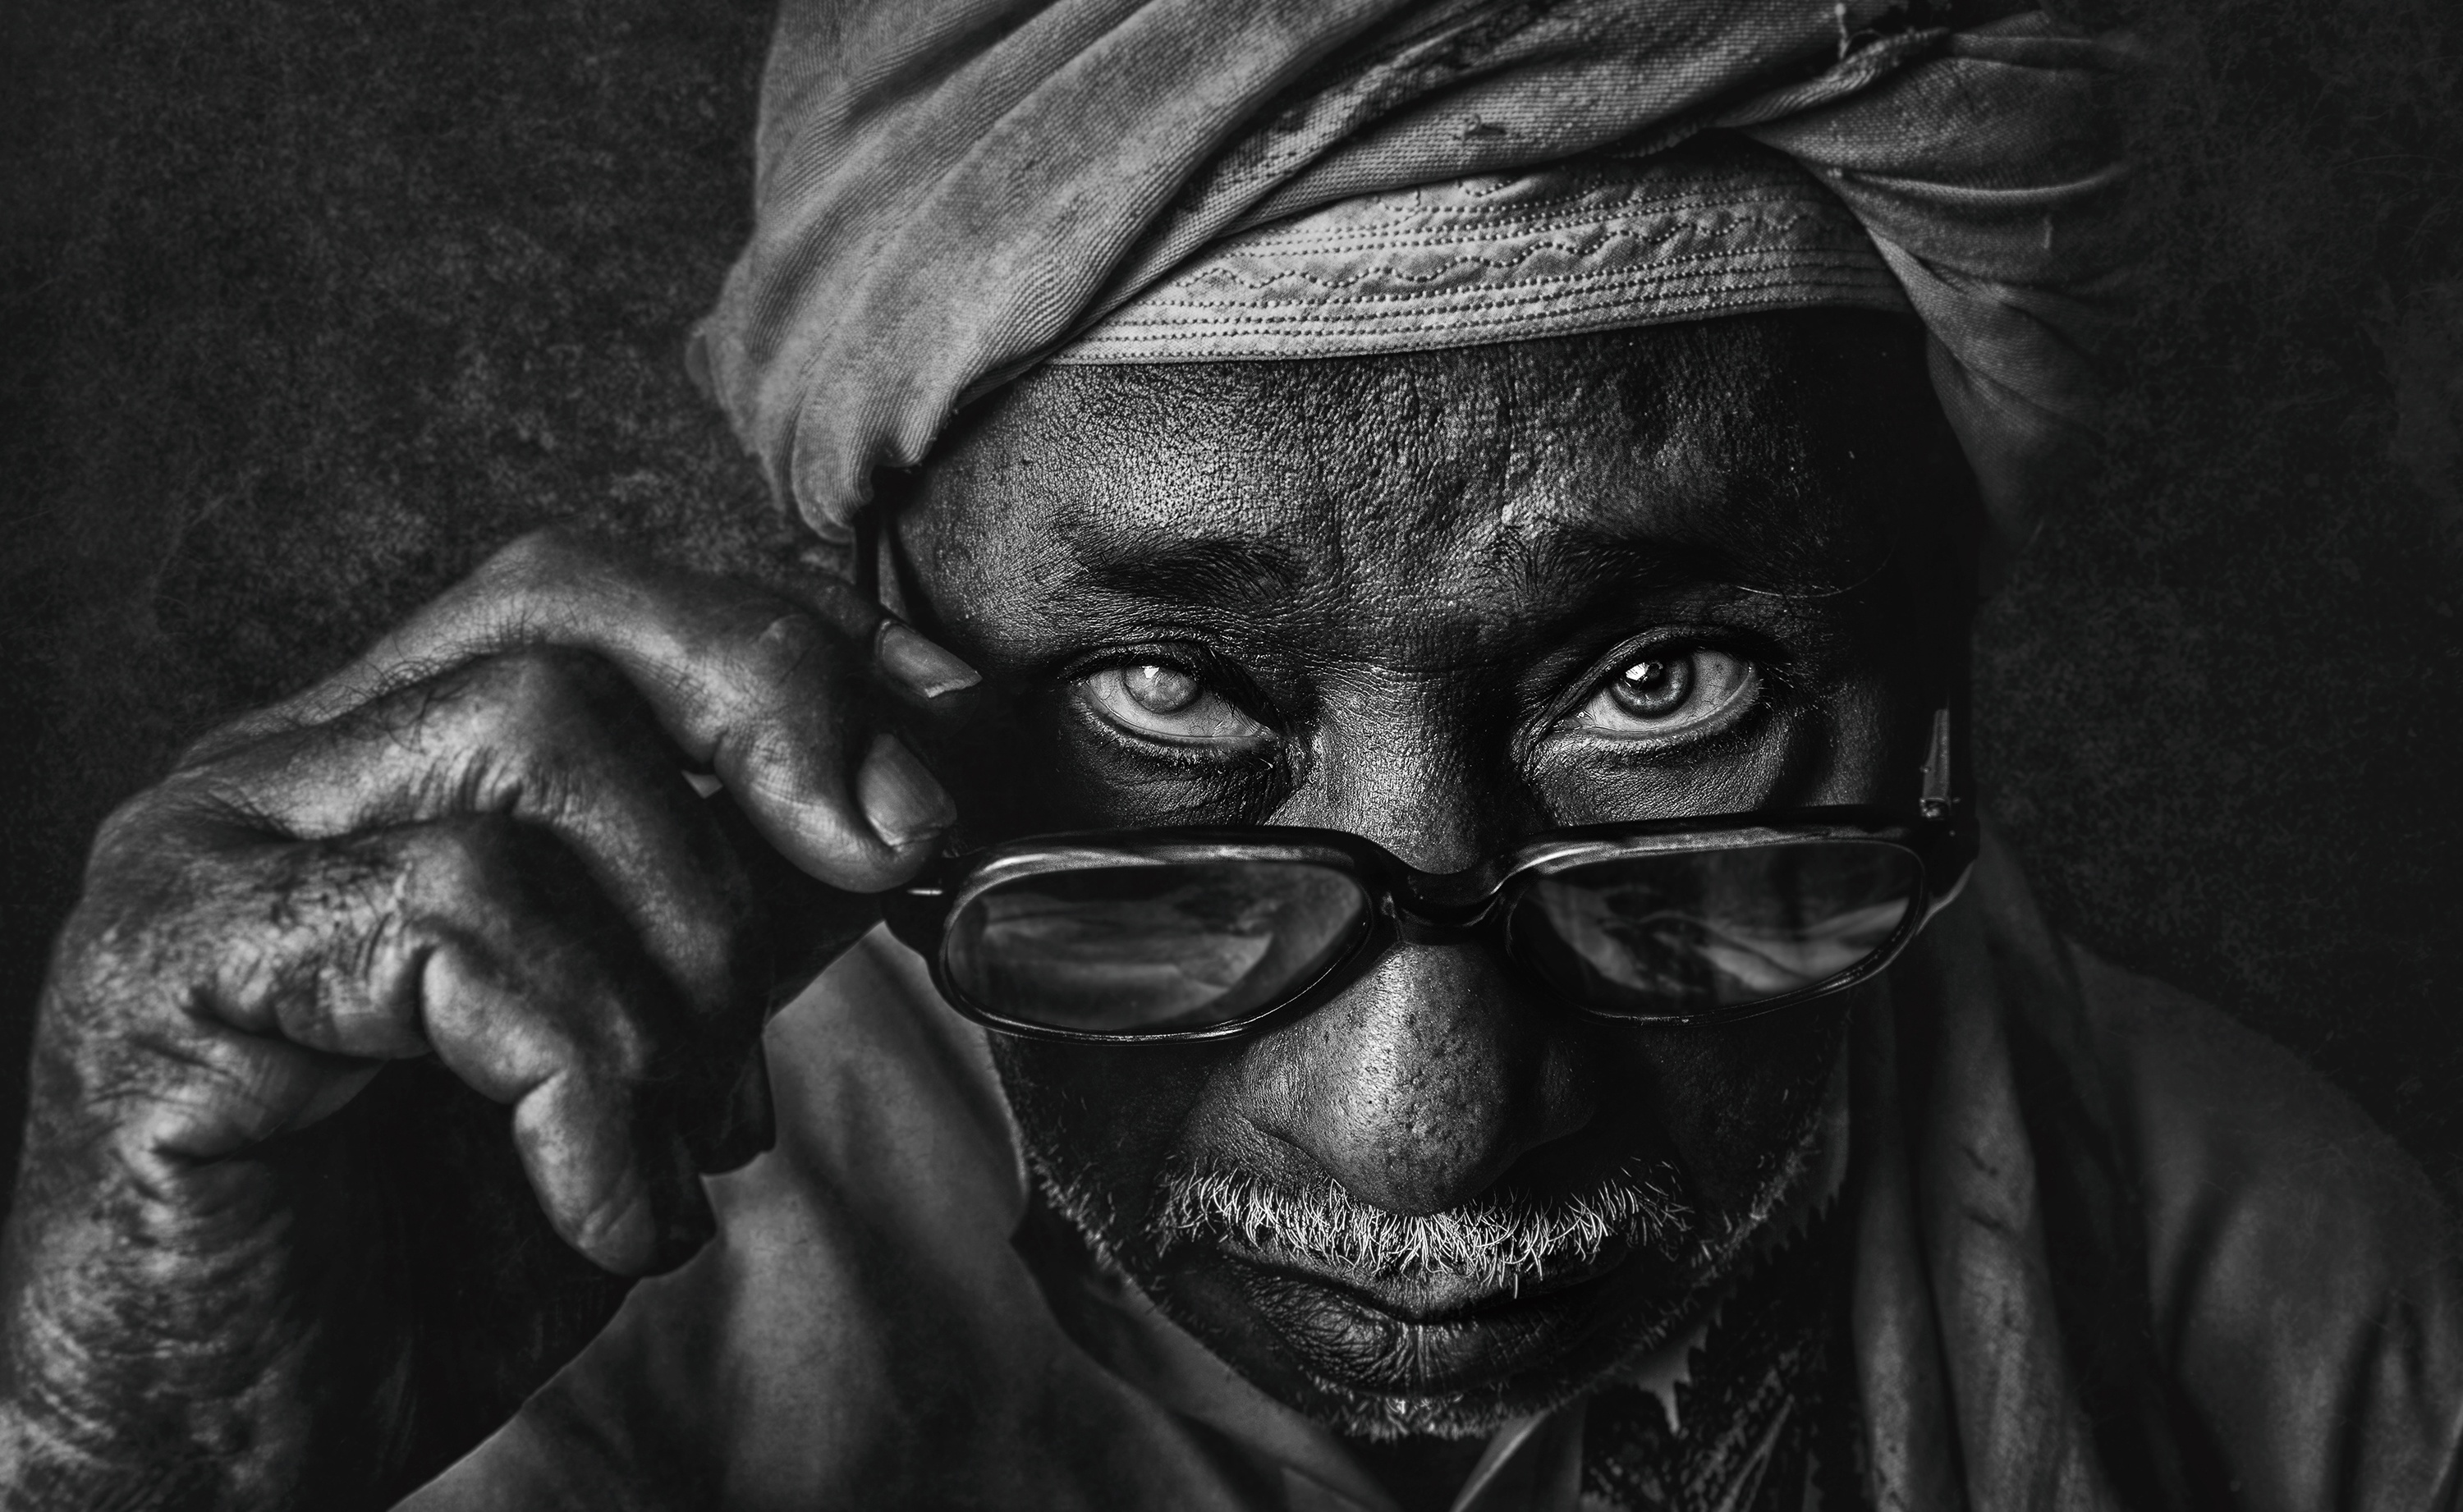 """It's been a long journey"" – Monochrome Portraits by Fadhel Almutaghawi"